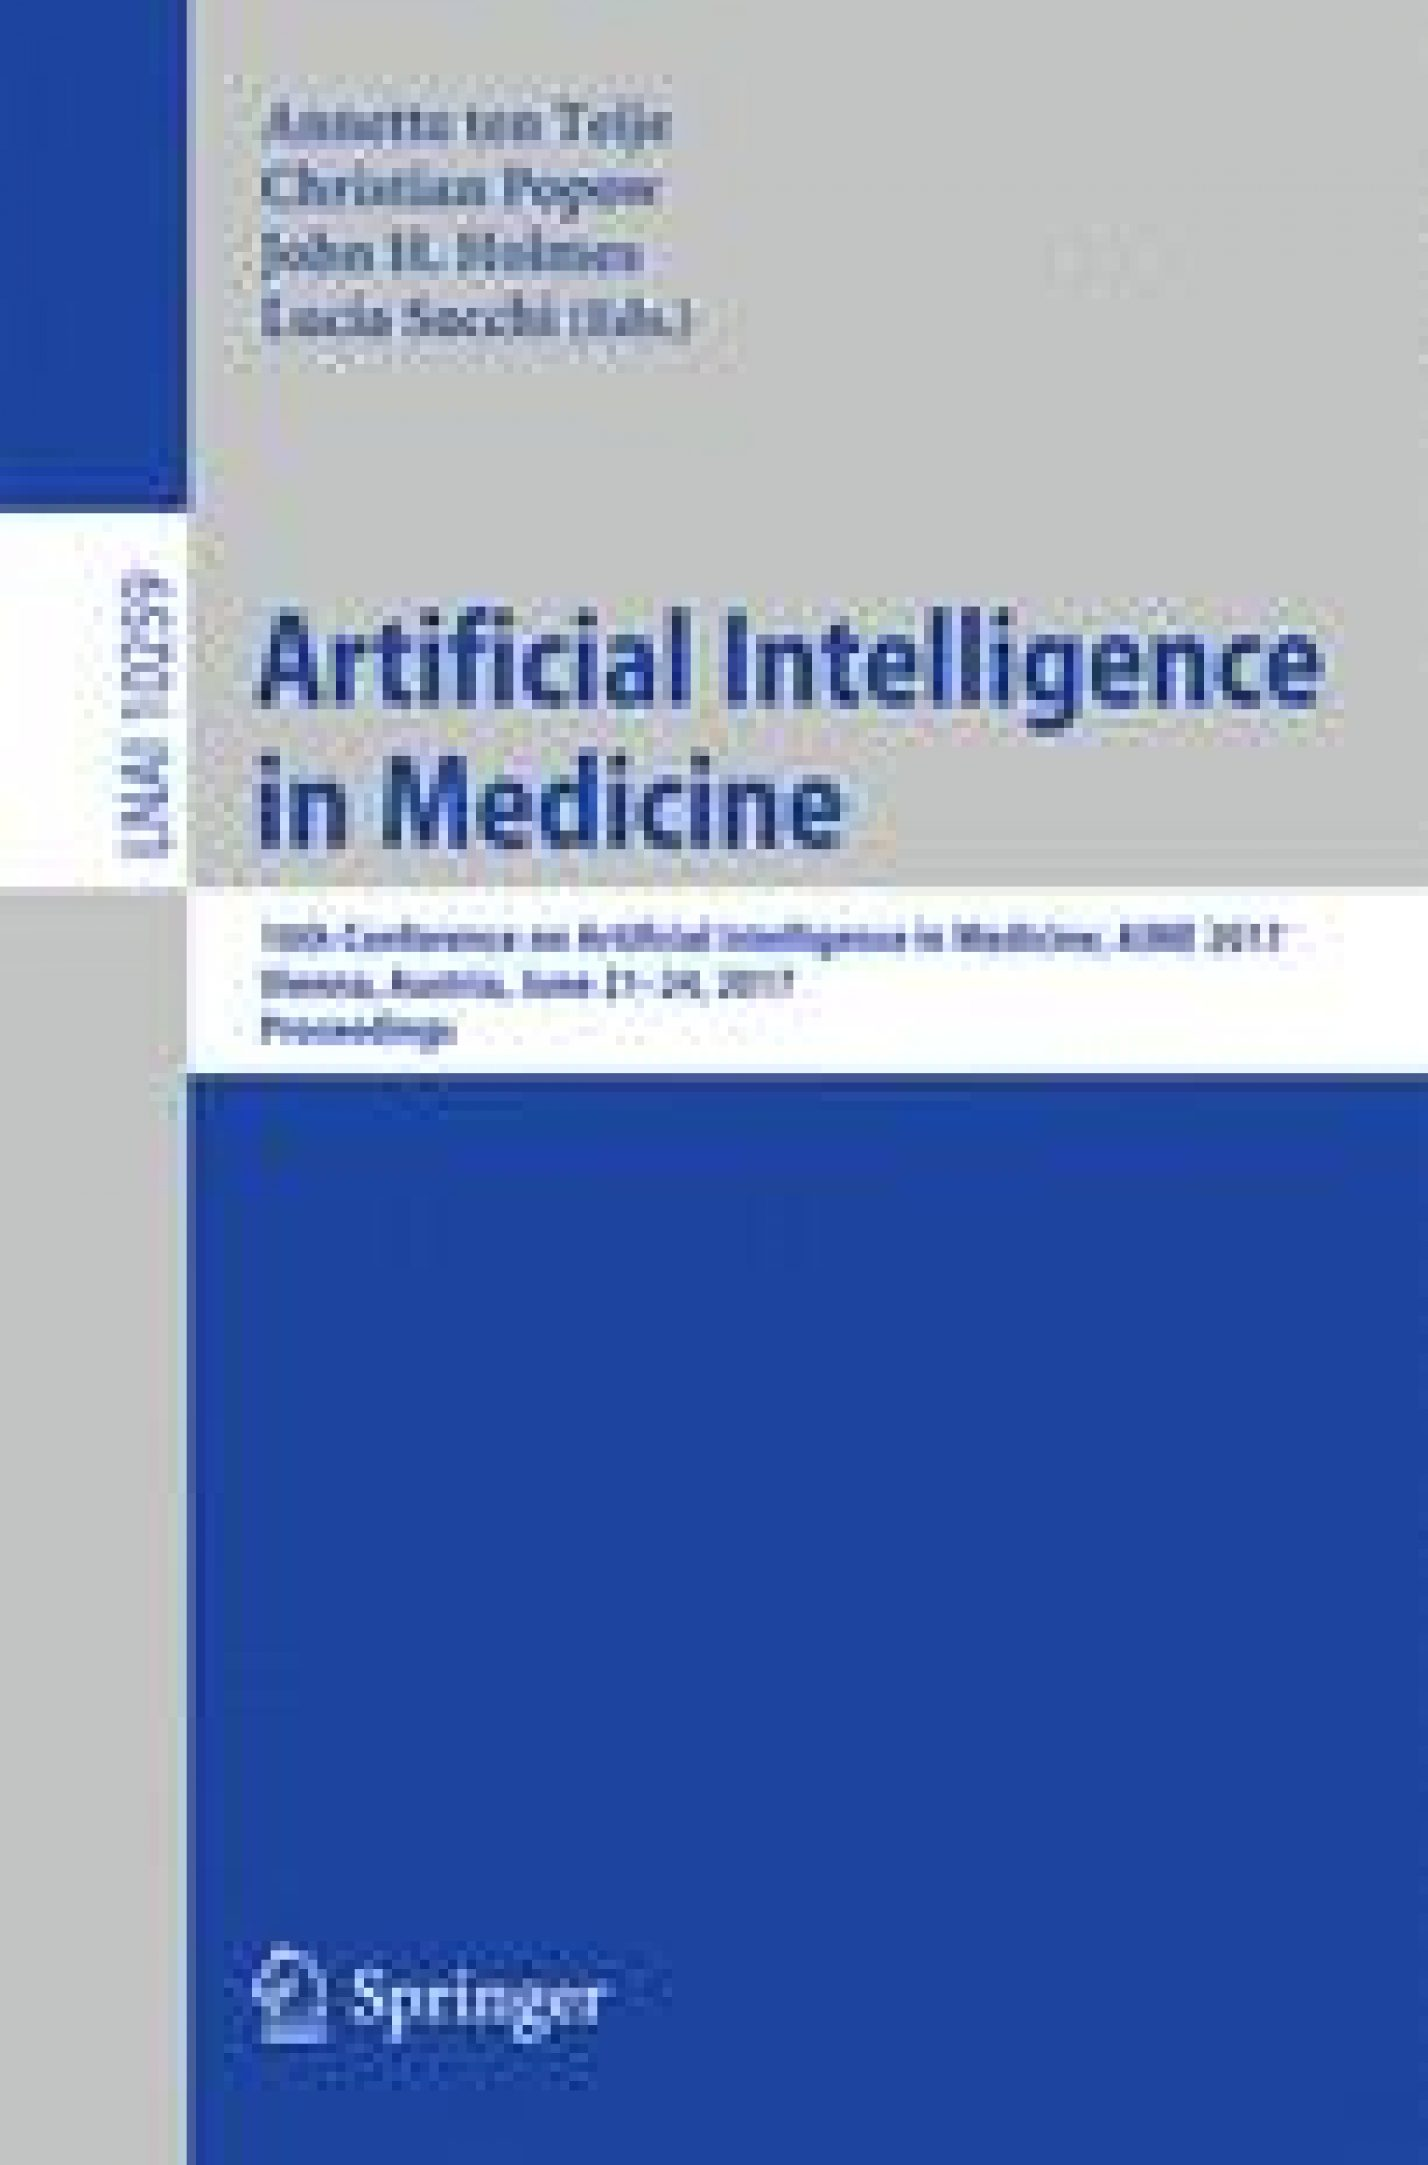 Semi-automated Ontology Development and Management System Applied to Medically Unexplained Syndromes in the U.S. Veterans Population